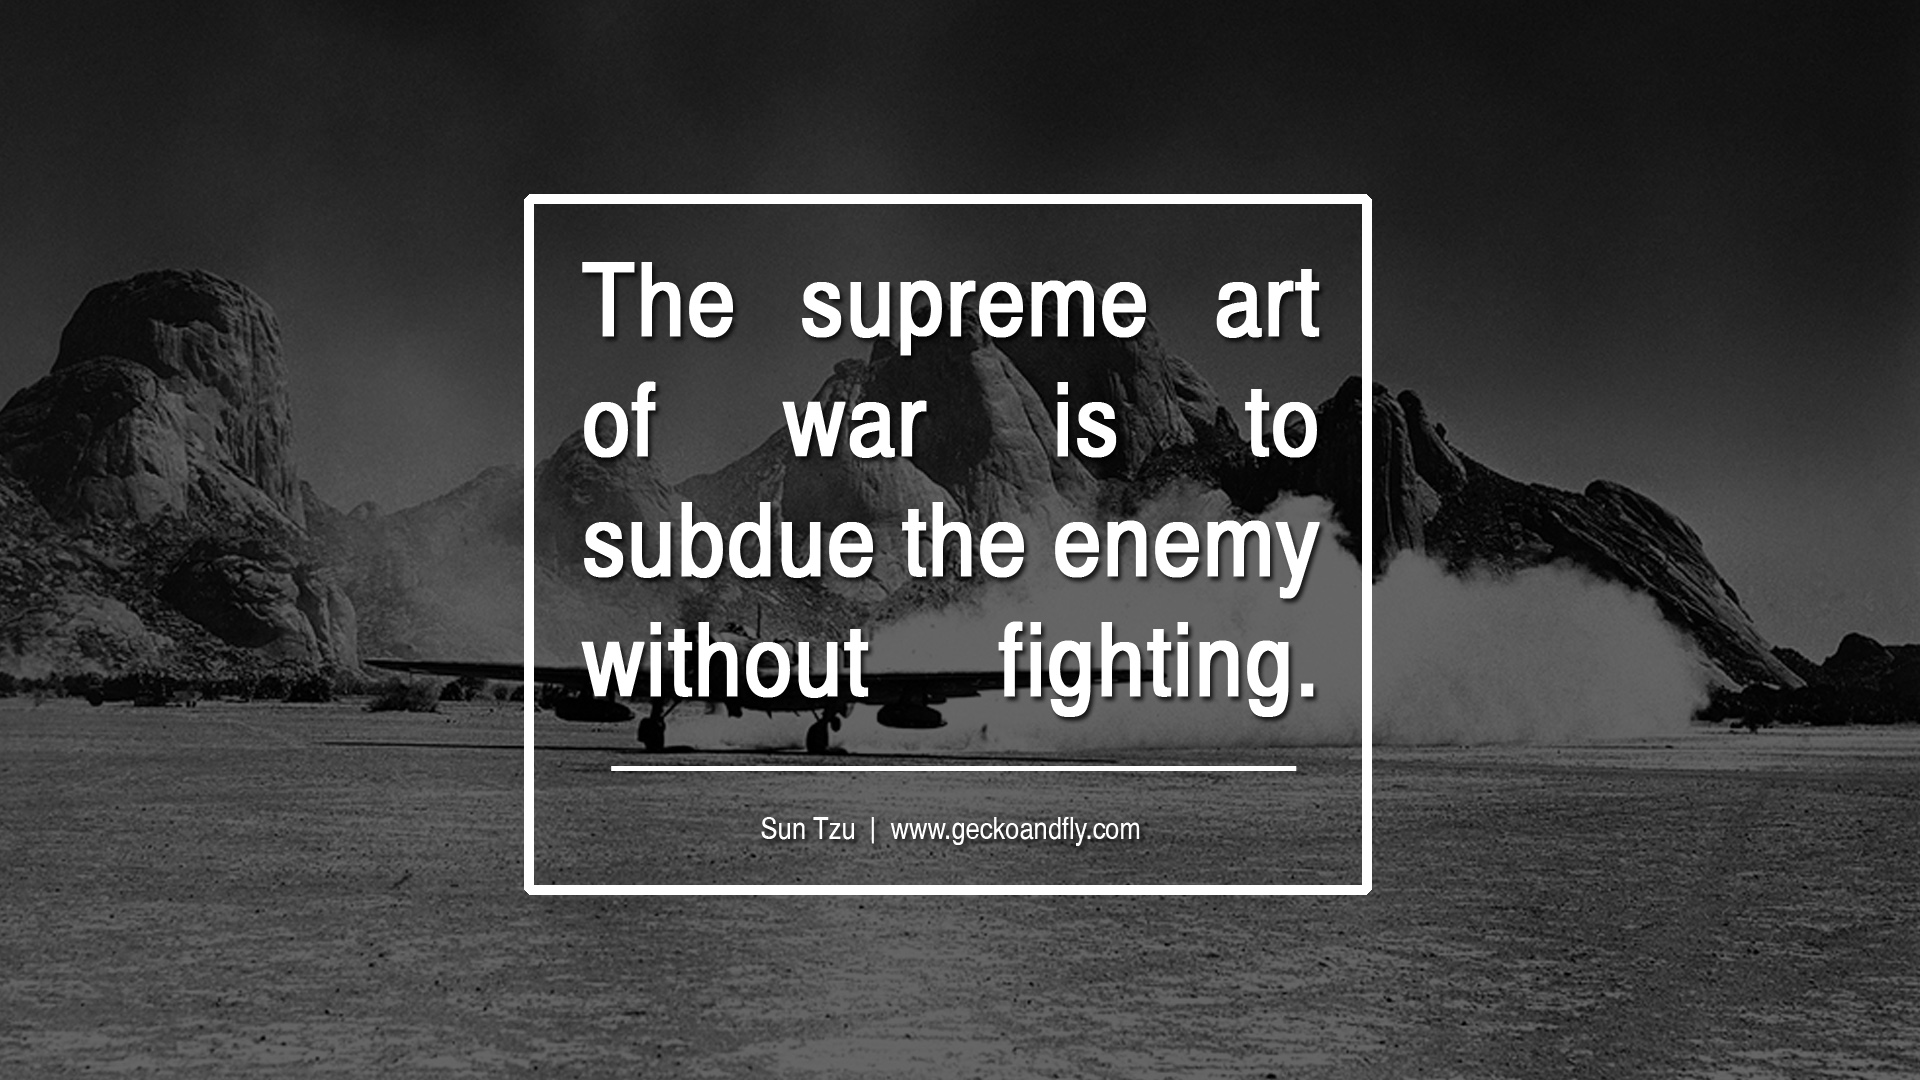 Quotes And Sayings: Famous Warrior Quotes And Sayings. QuotesGram